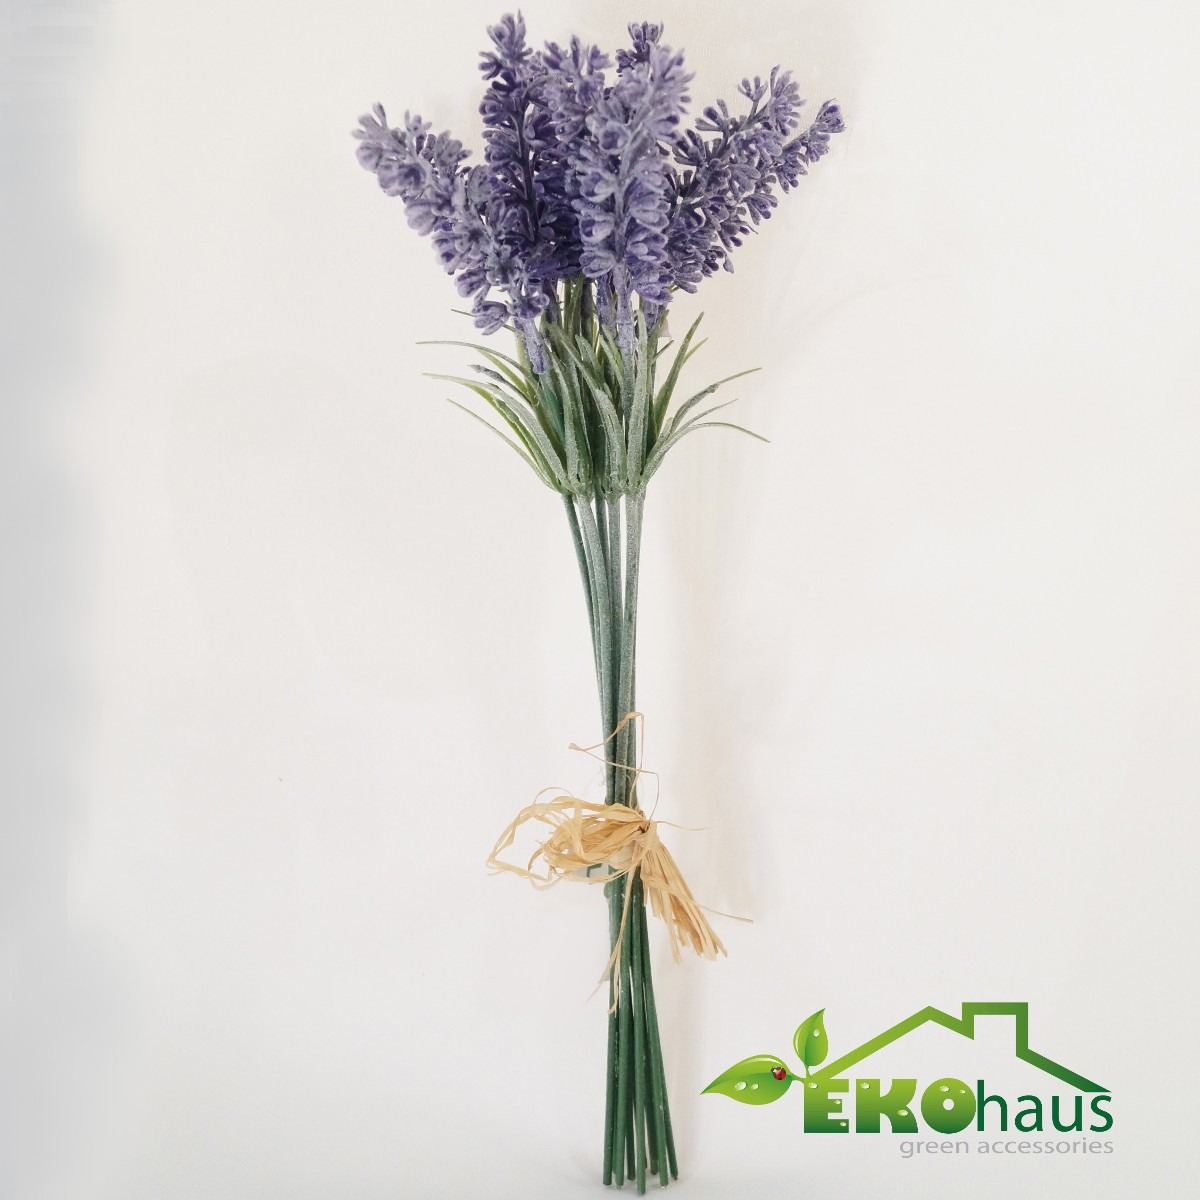 Lavanda flores plantas artificiales decoraci n 50 for Plantas artificiales decoracion